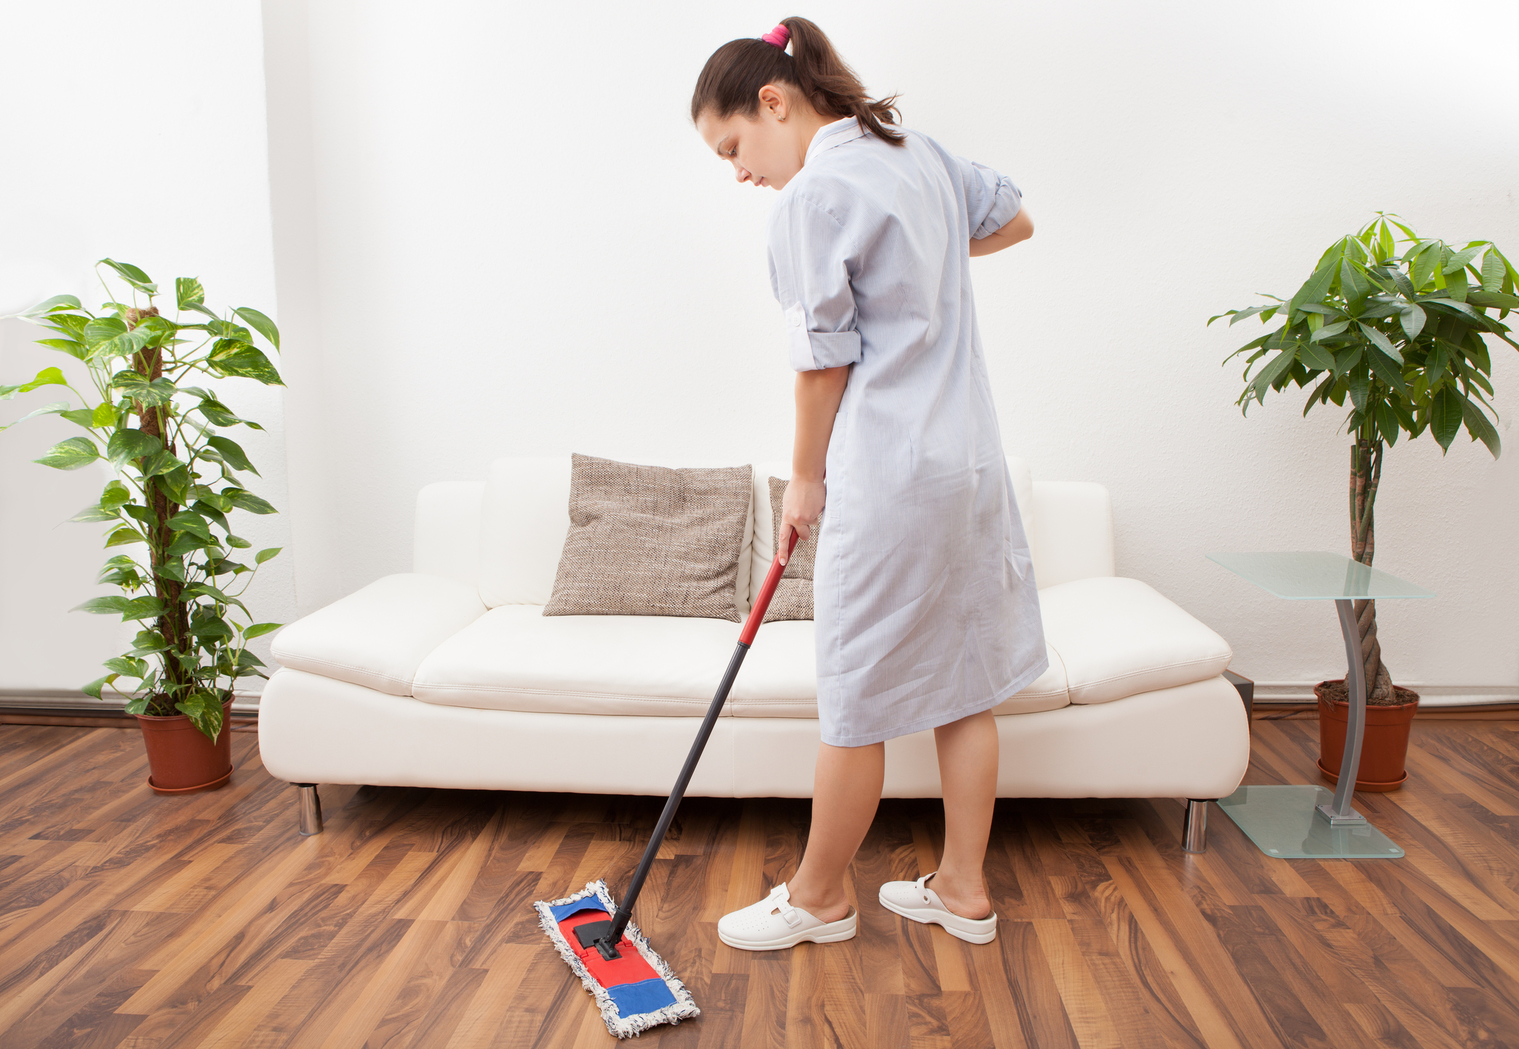 Thinking Big About Home Cleaning